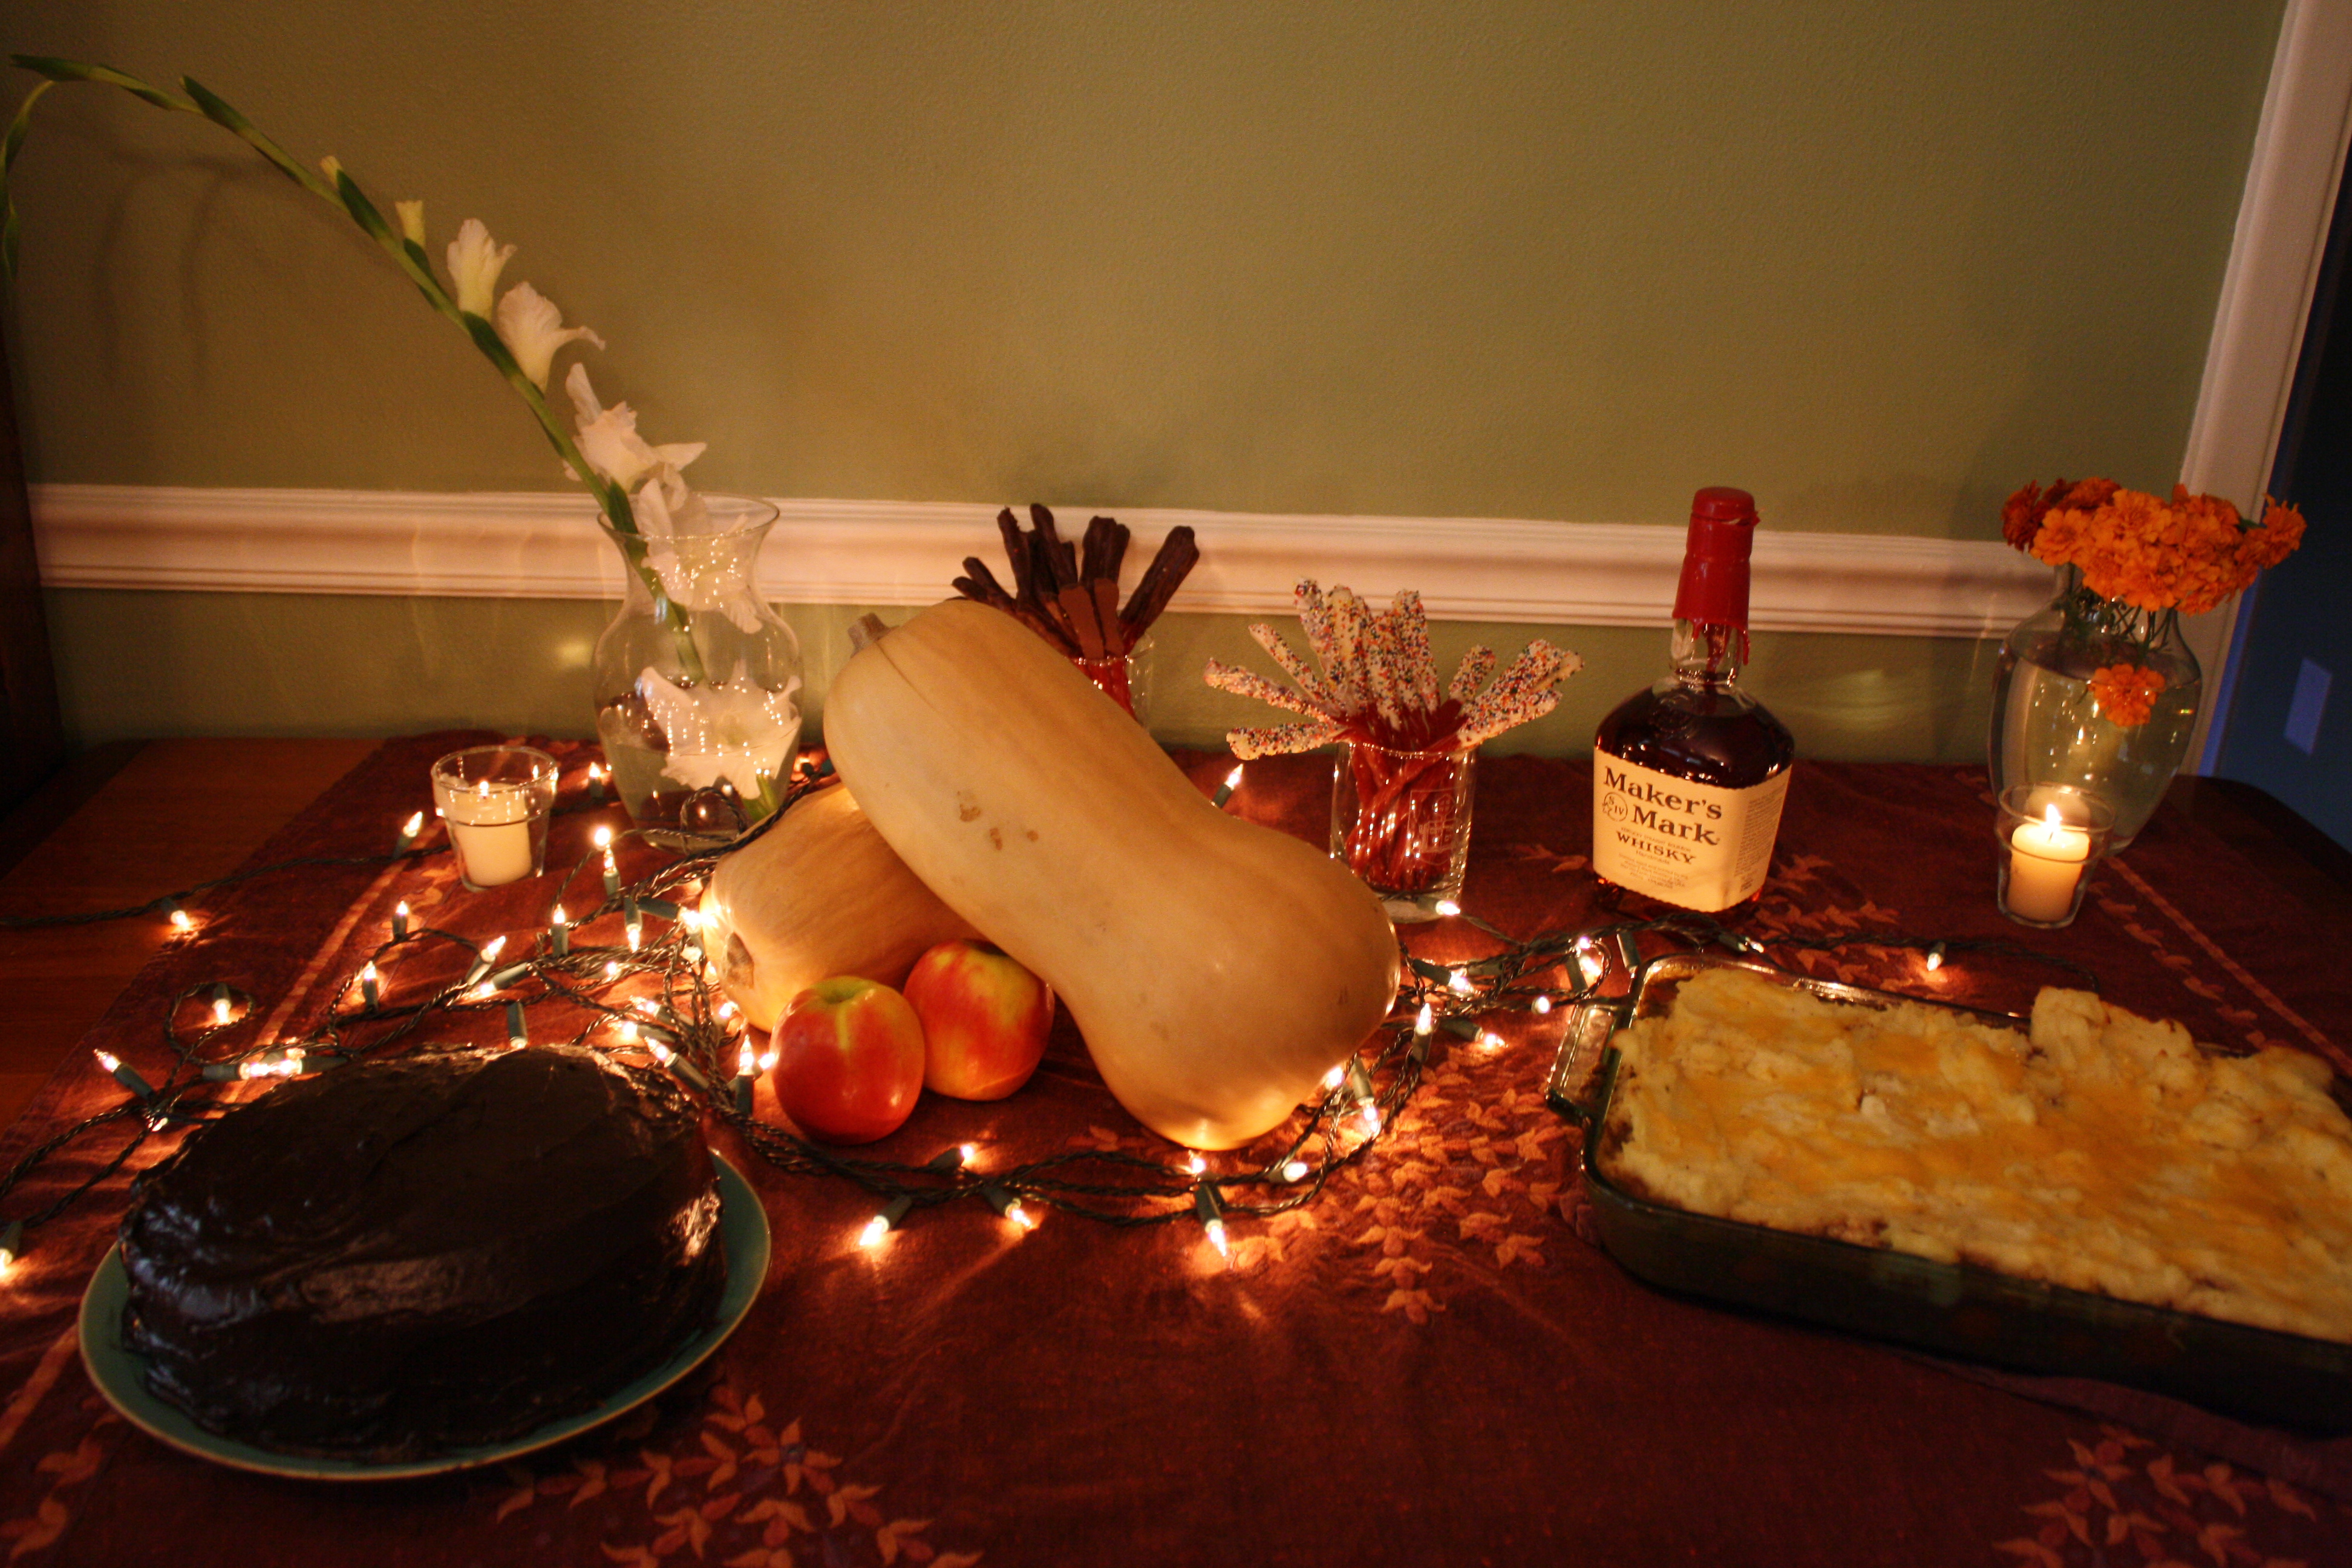 Here is our food spread: Shepherd's Pie, Chocolate Cake from Hagrid ...